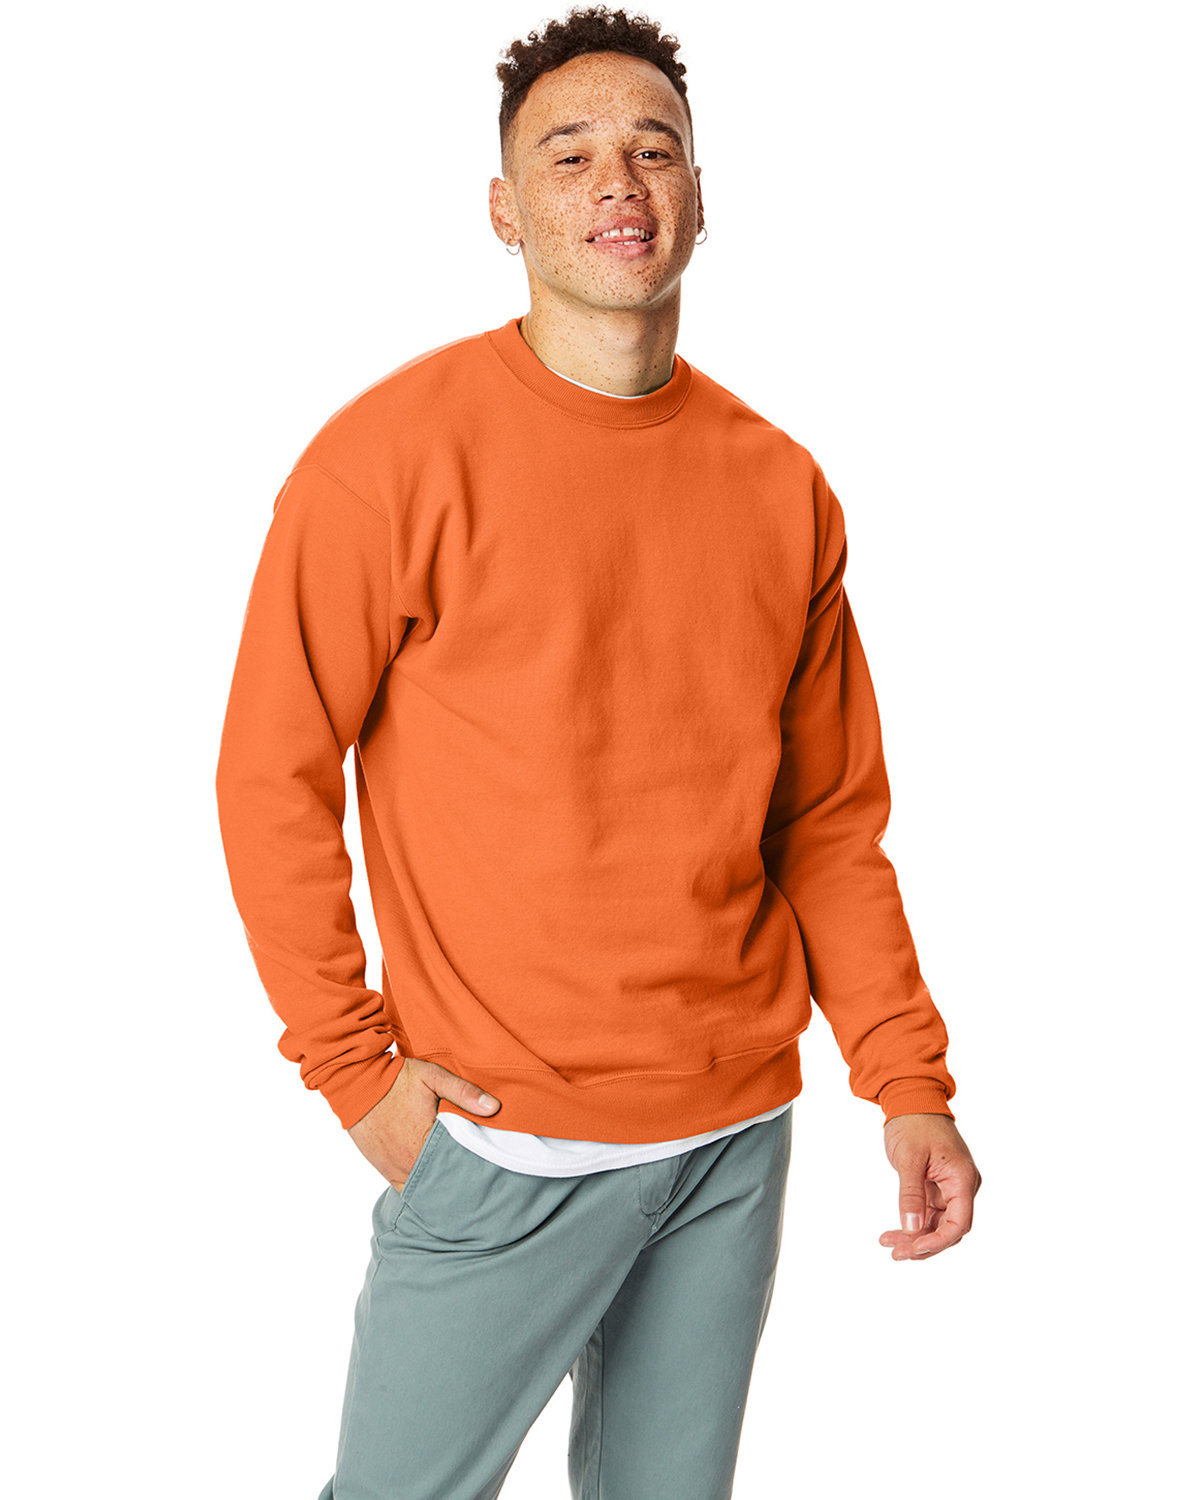 Hanes Unisex 7.8 oz., Ecosmart® 50/50 Crewneck Sweatshirt SAFETY ORANGE